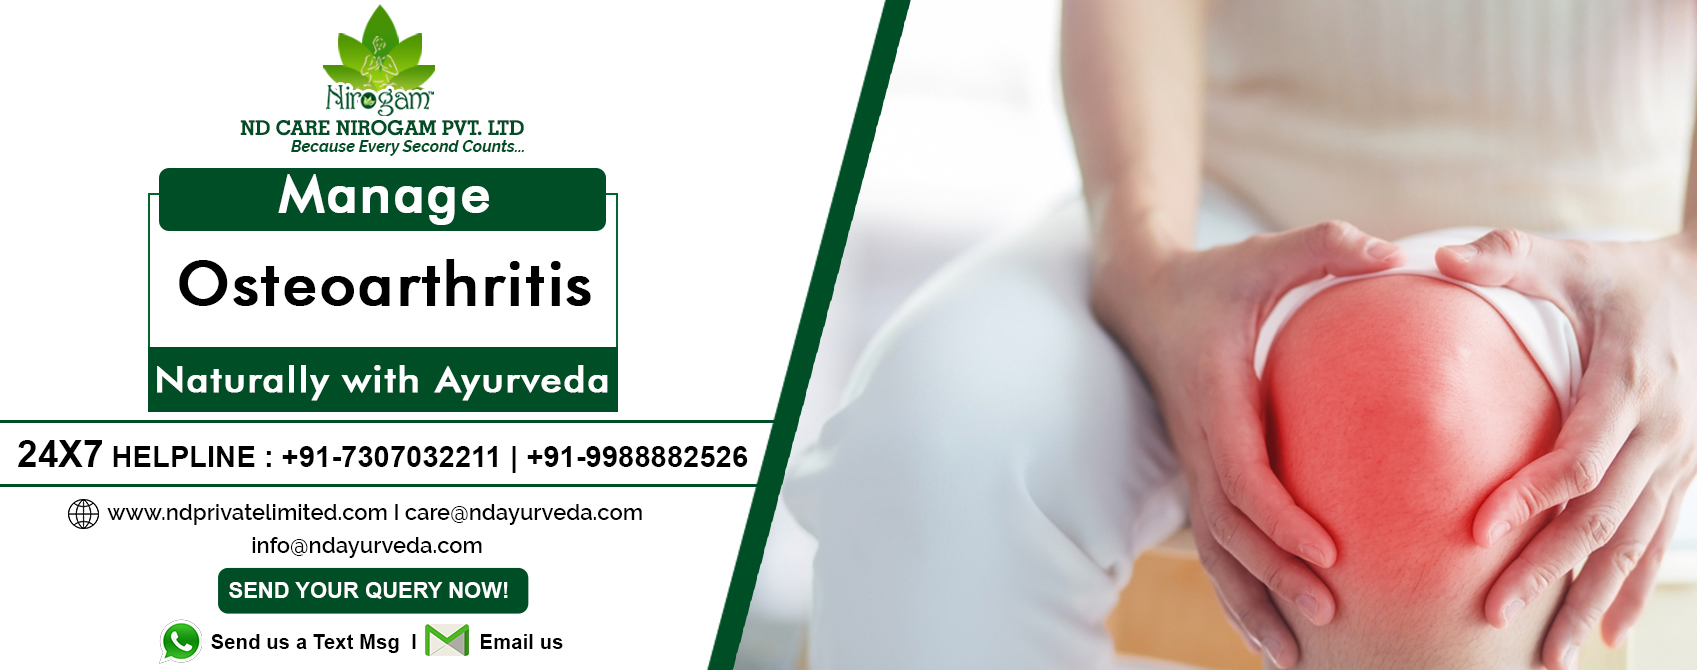 Ayurvedic airthritis Treatment